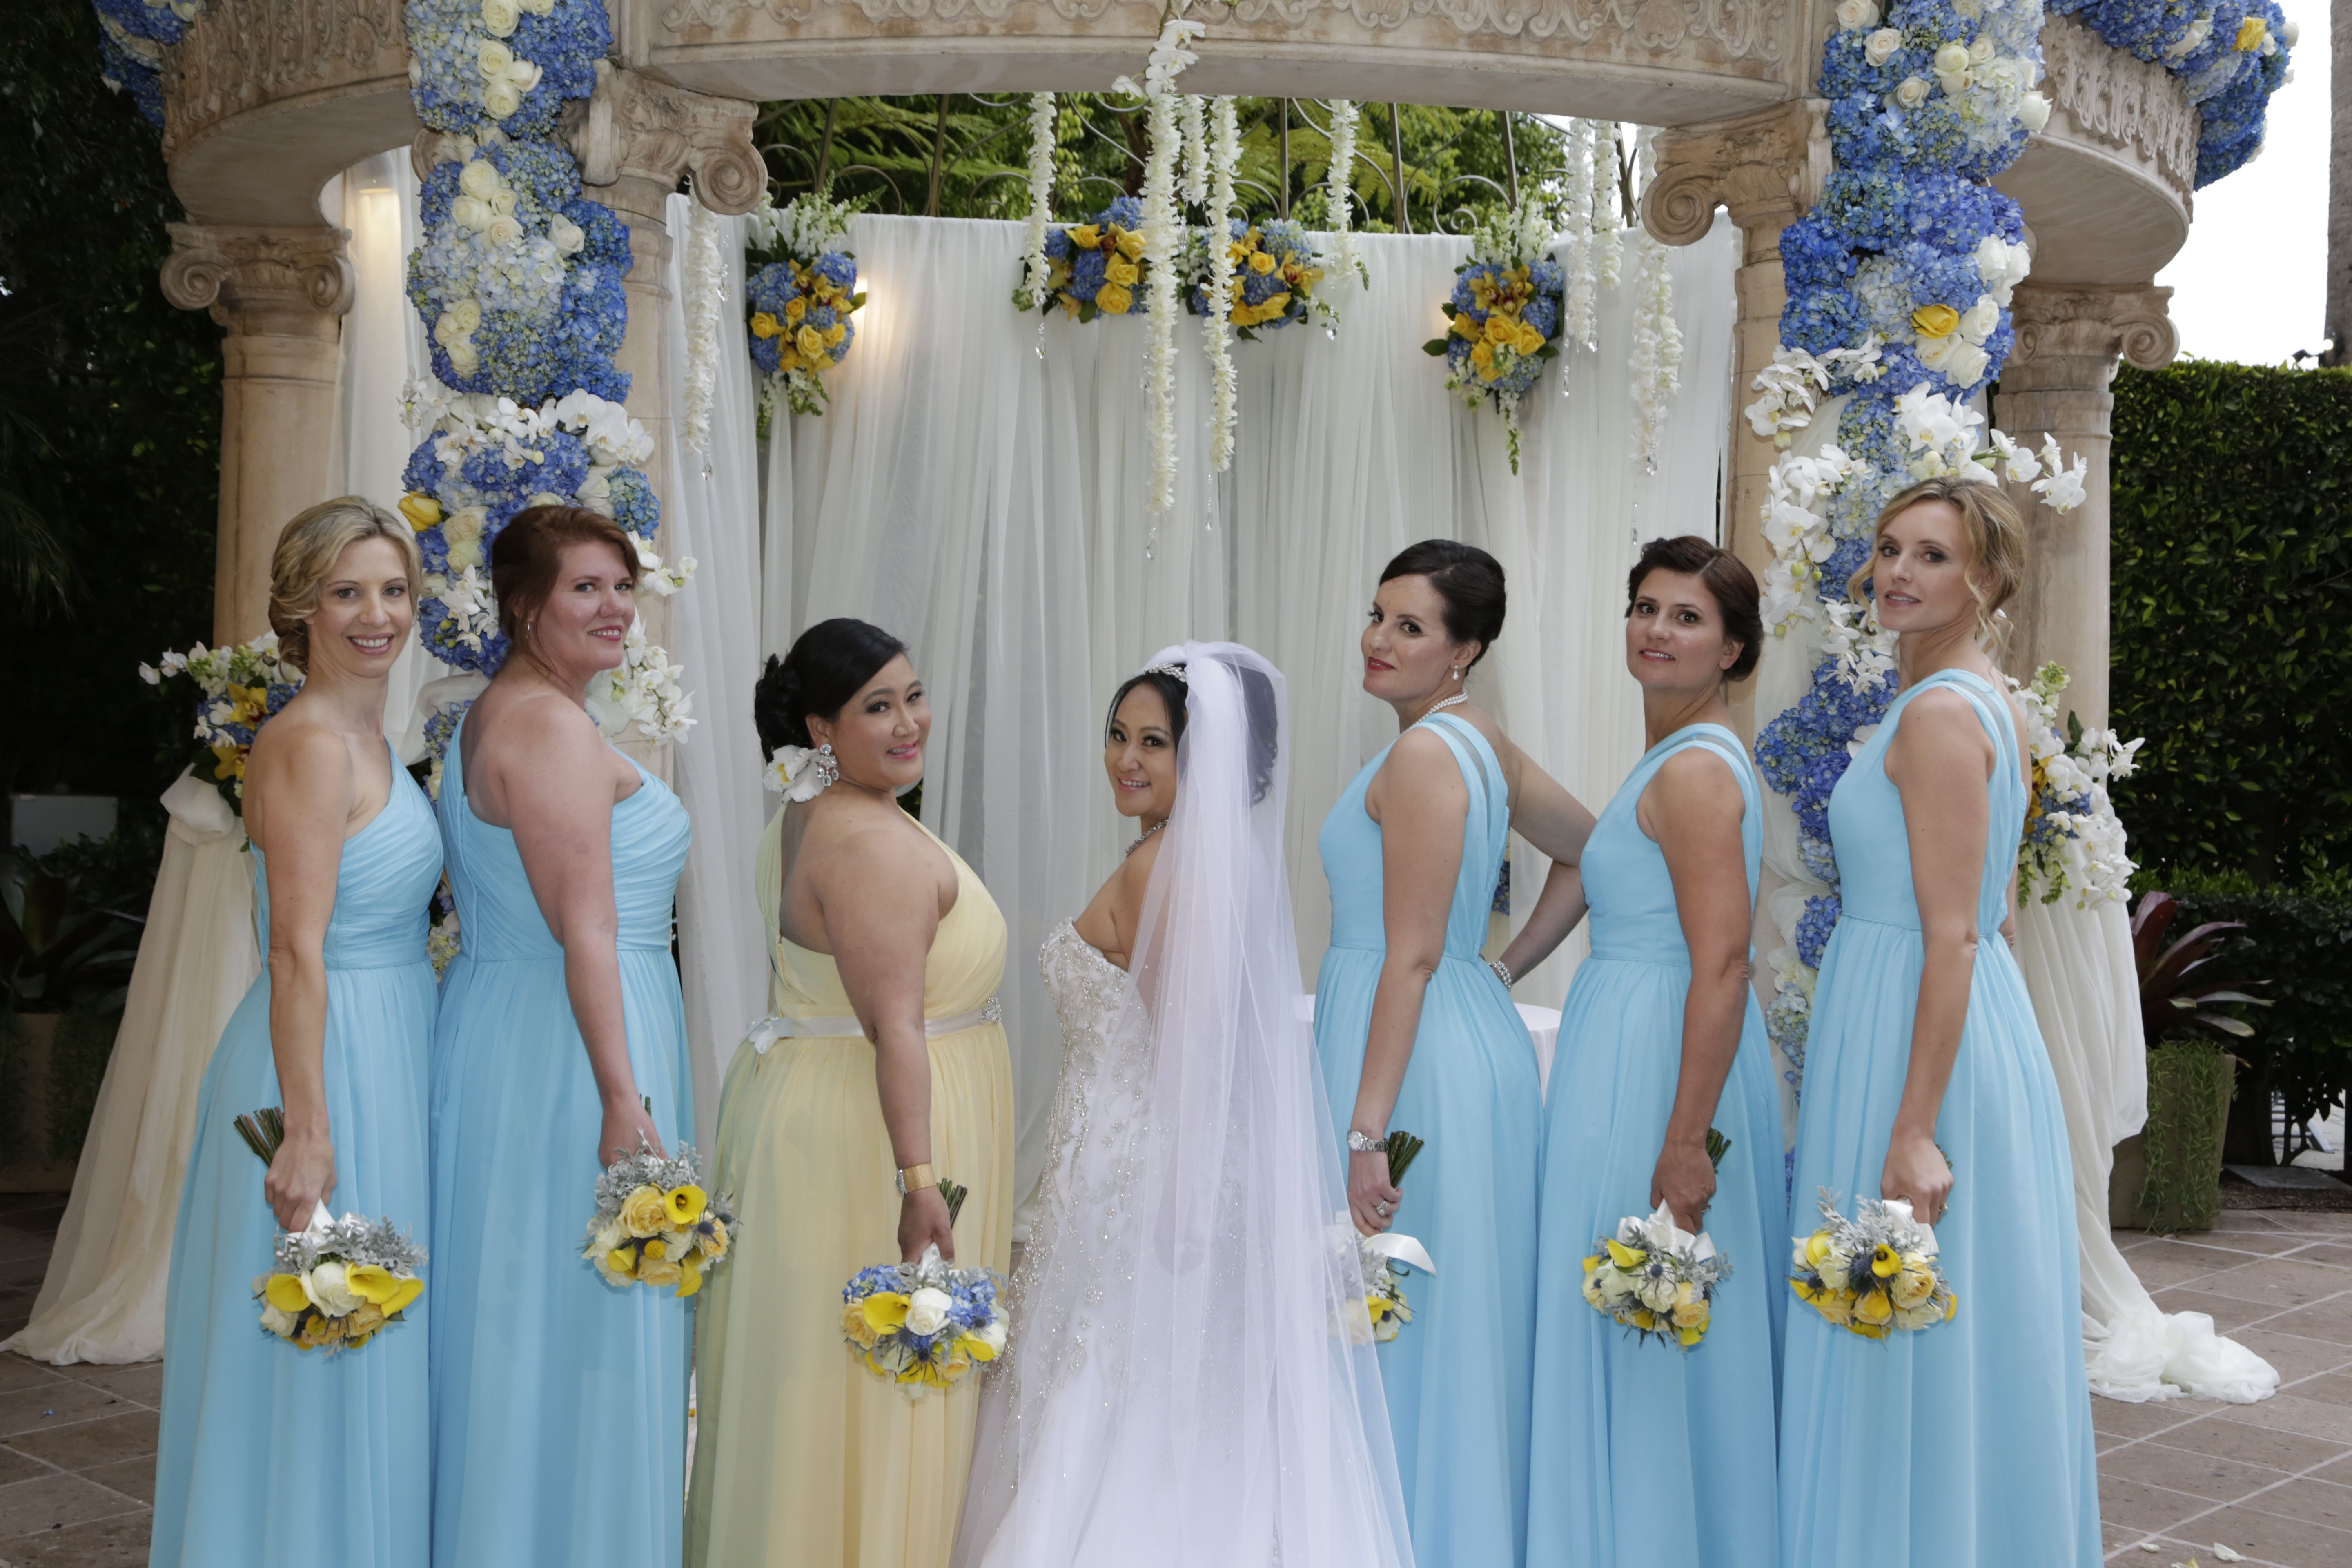 Beautiful bridesmaids in sky blue and butter yellow bridesmaid beautiful bridesmaids in sky blue and butter yellow bridesmaid dresses ombrellifo Gallery